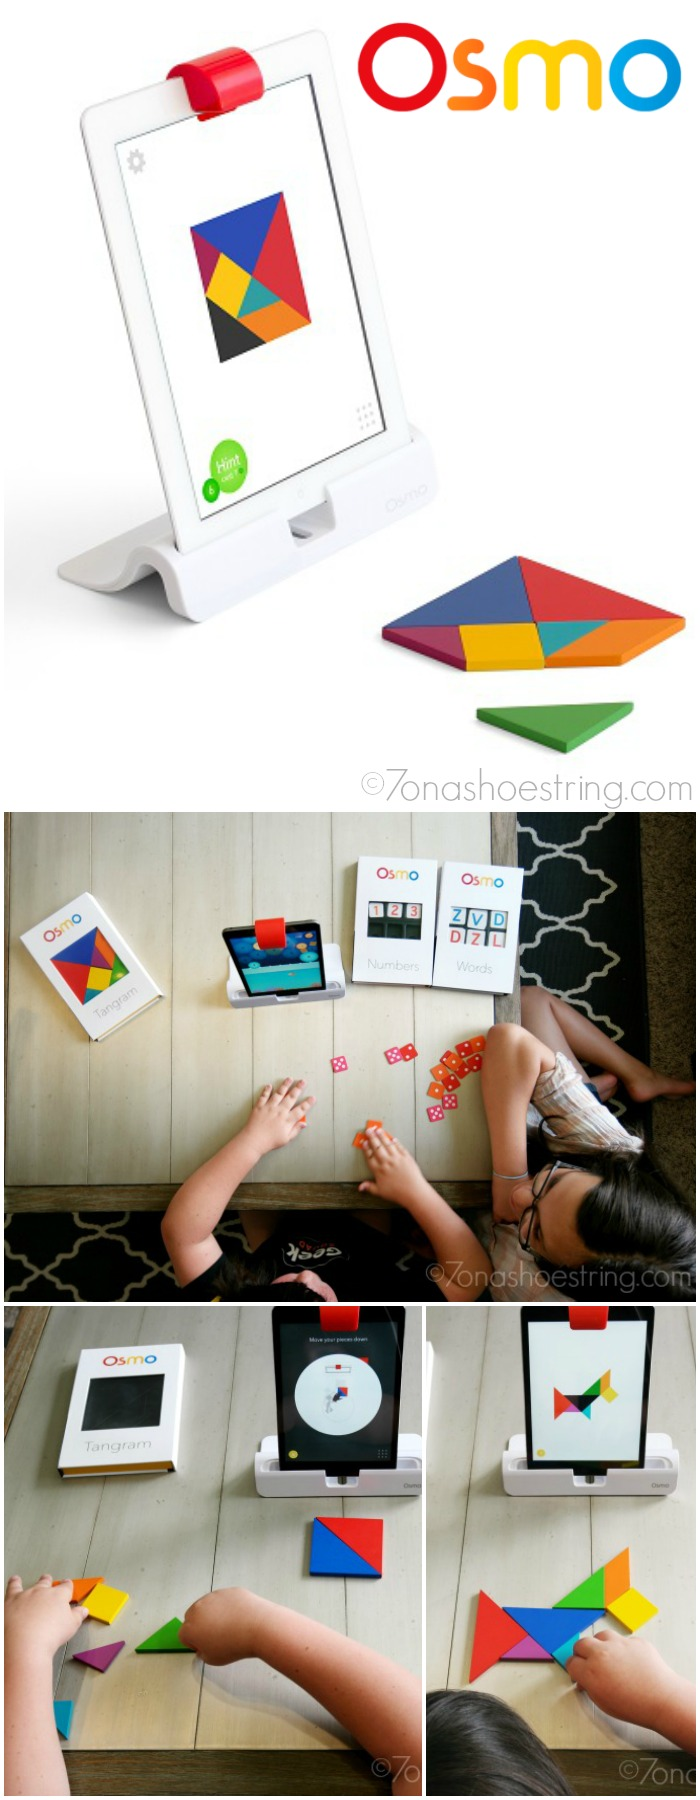 Osmo Game System from Best Buy